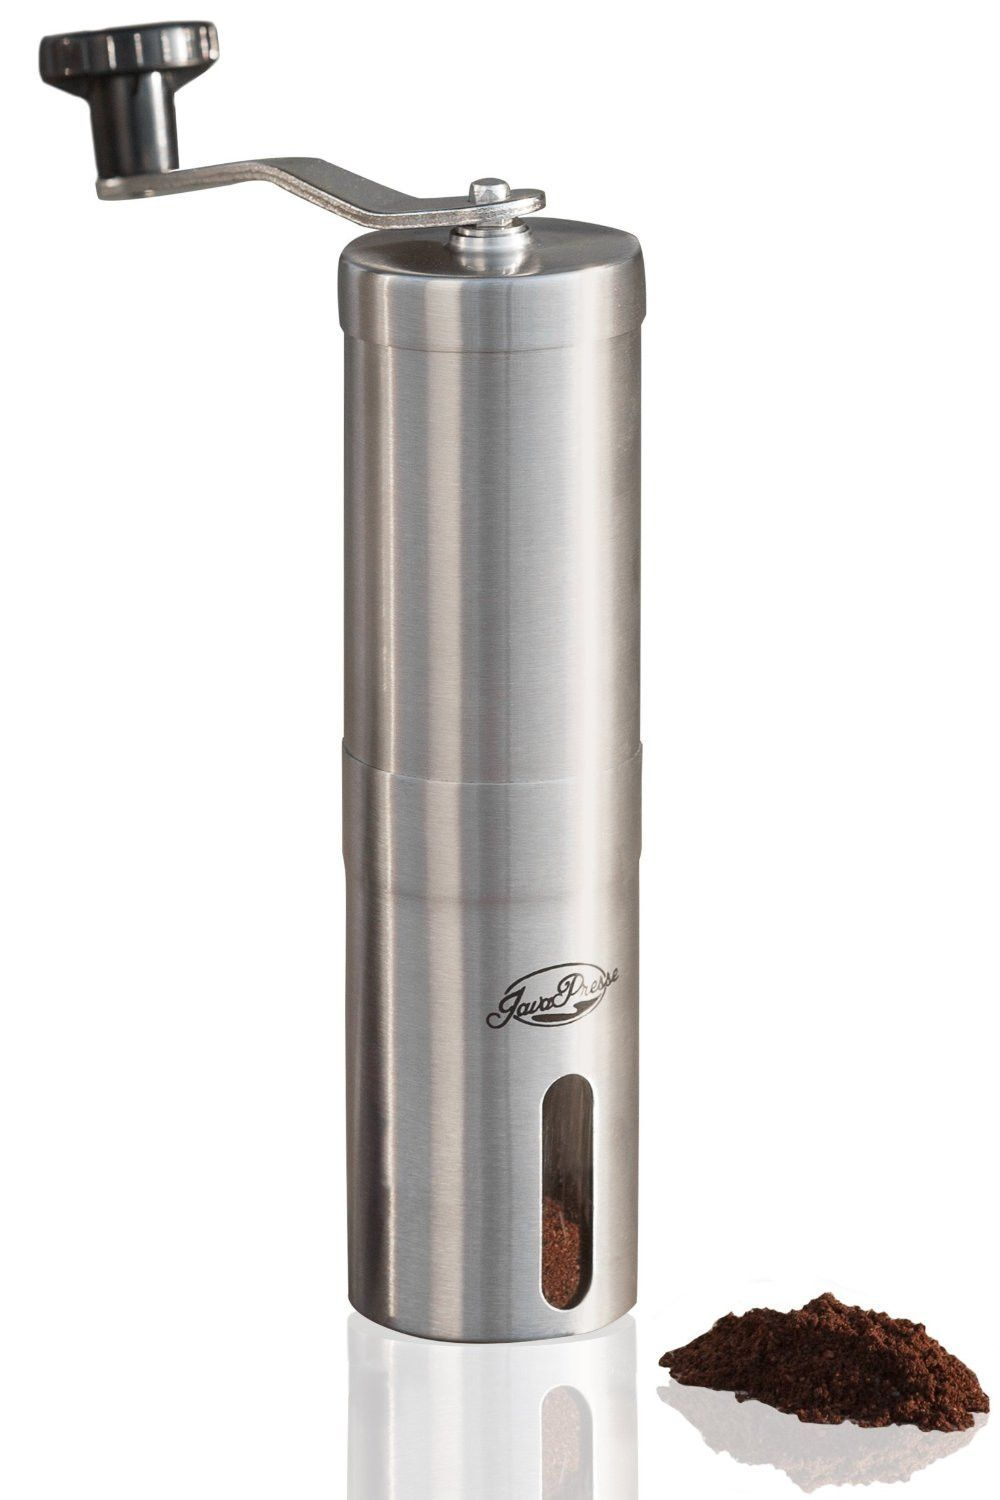 JavaPresse Manual Coffee Grinder Conical Burr Mill for Precision Brewing Brushed Stainless Steel